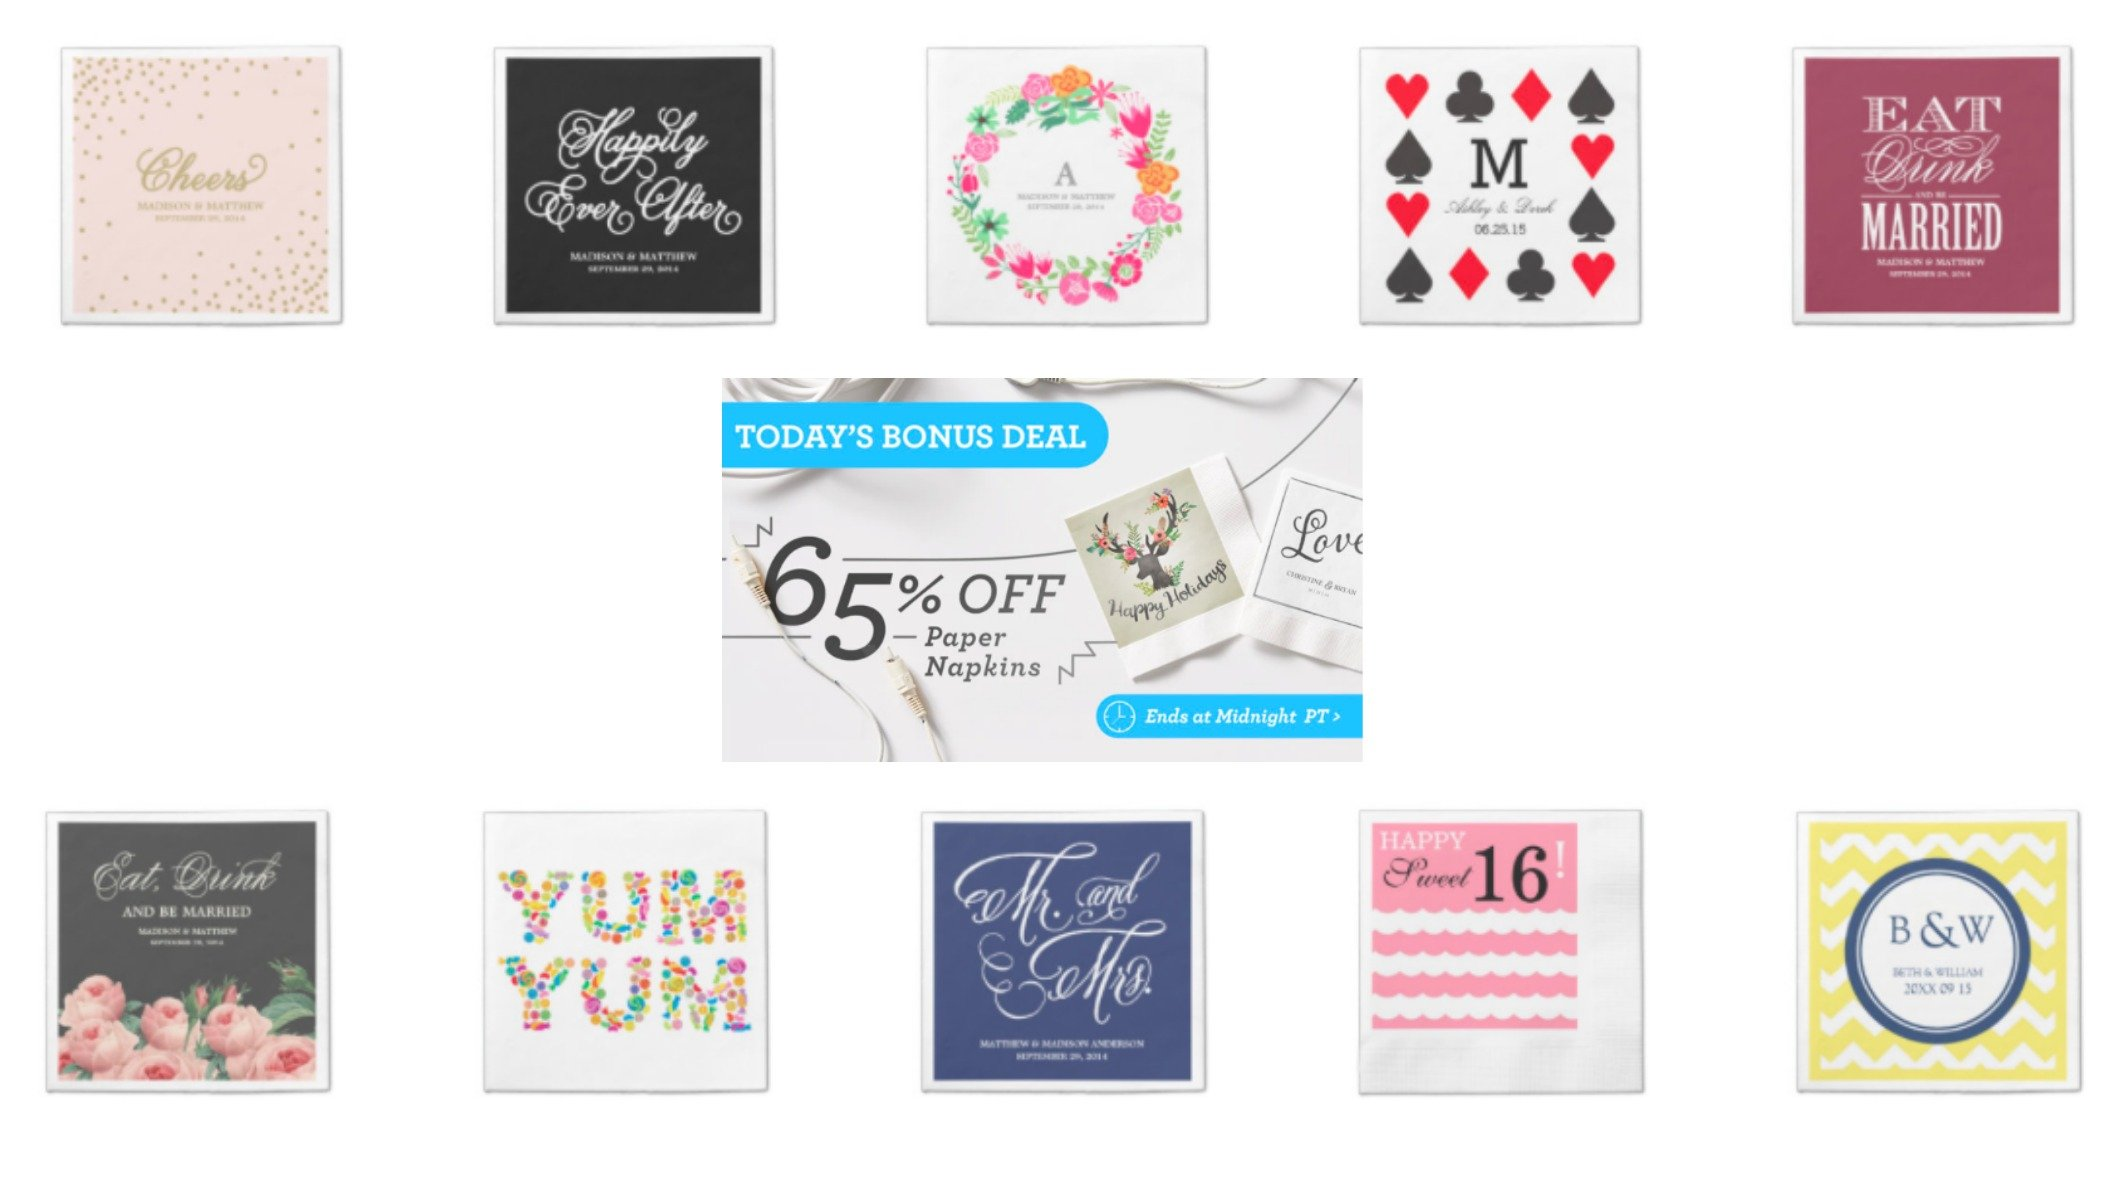 Custom Paper Napkin Sale